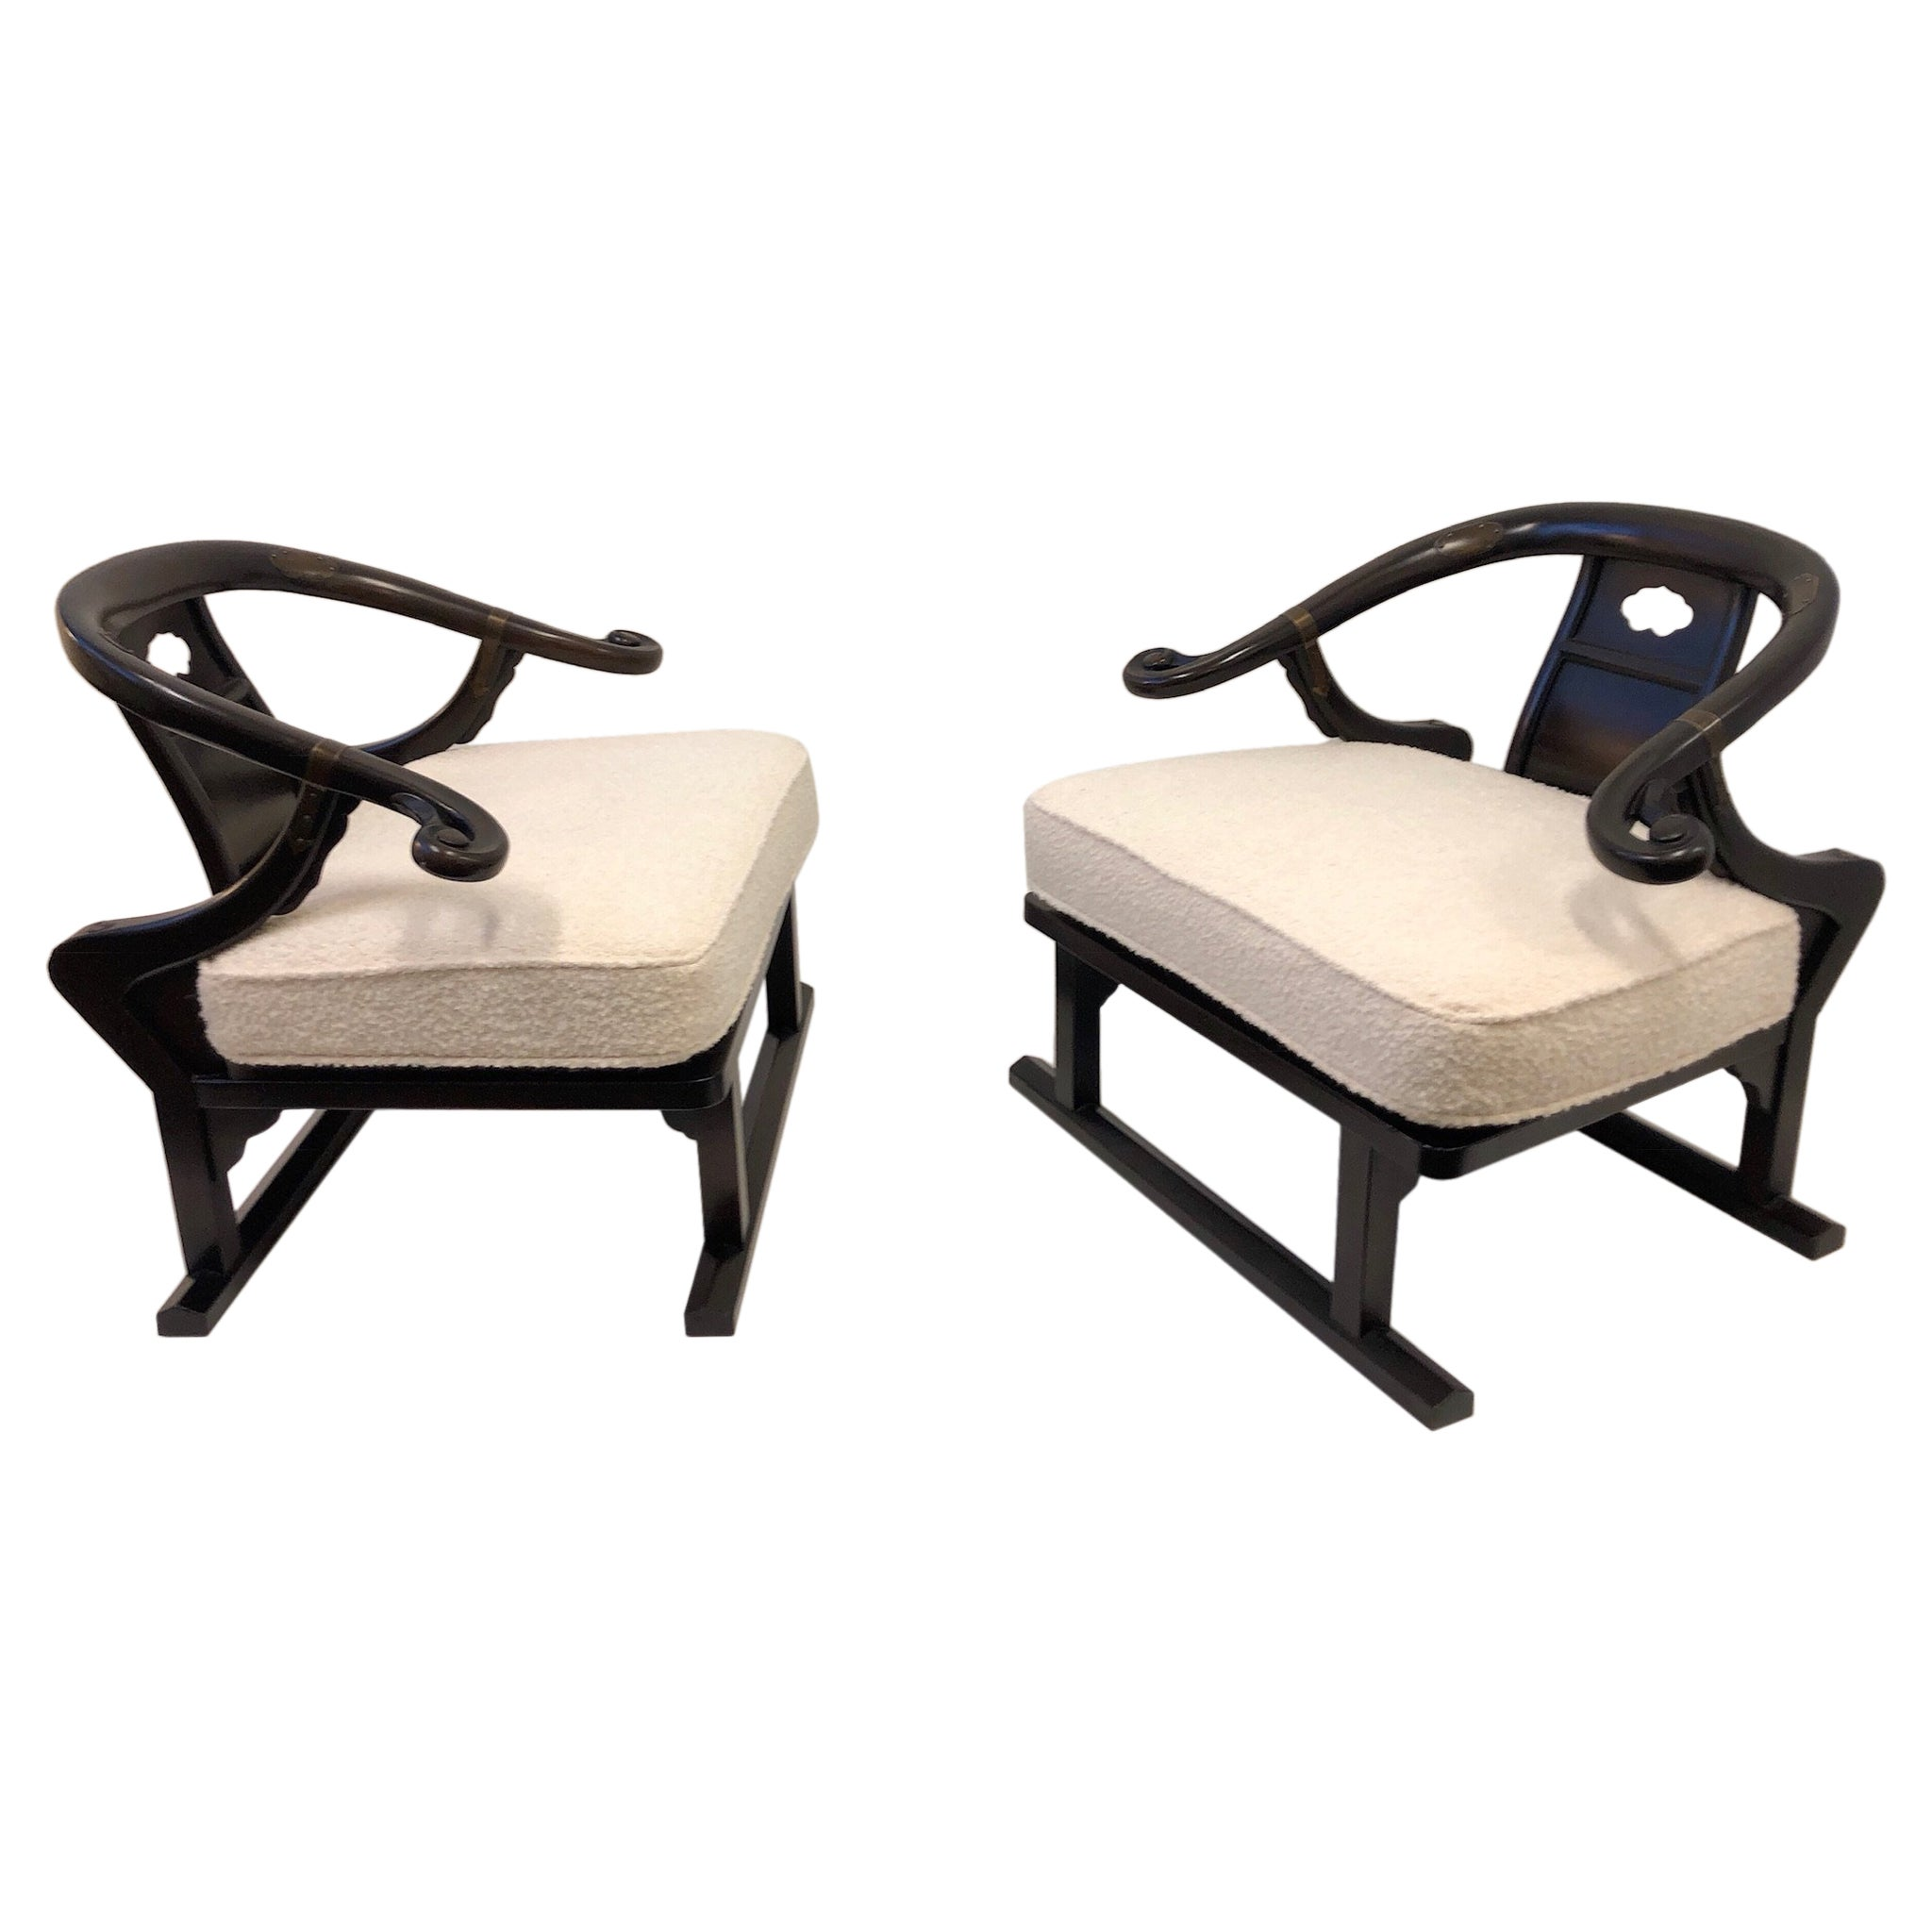 Pair of Walnut Lounge Chairs by Michael Taylor for Baker